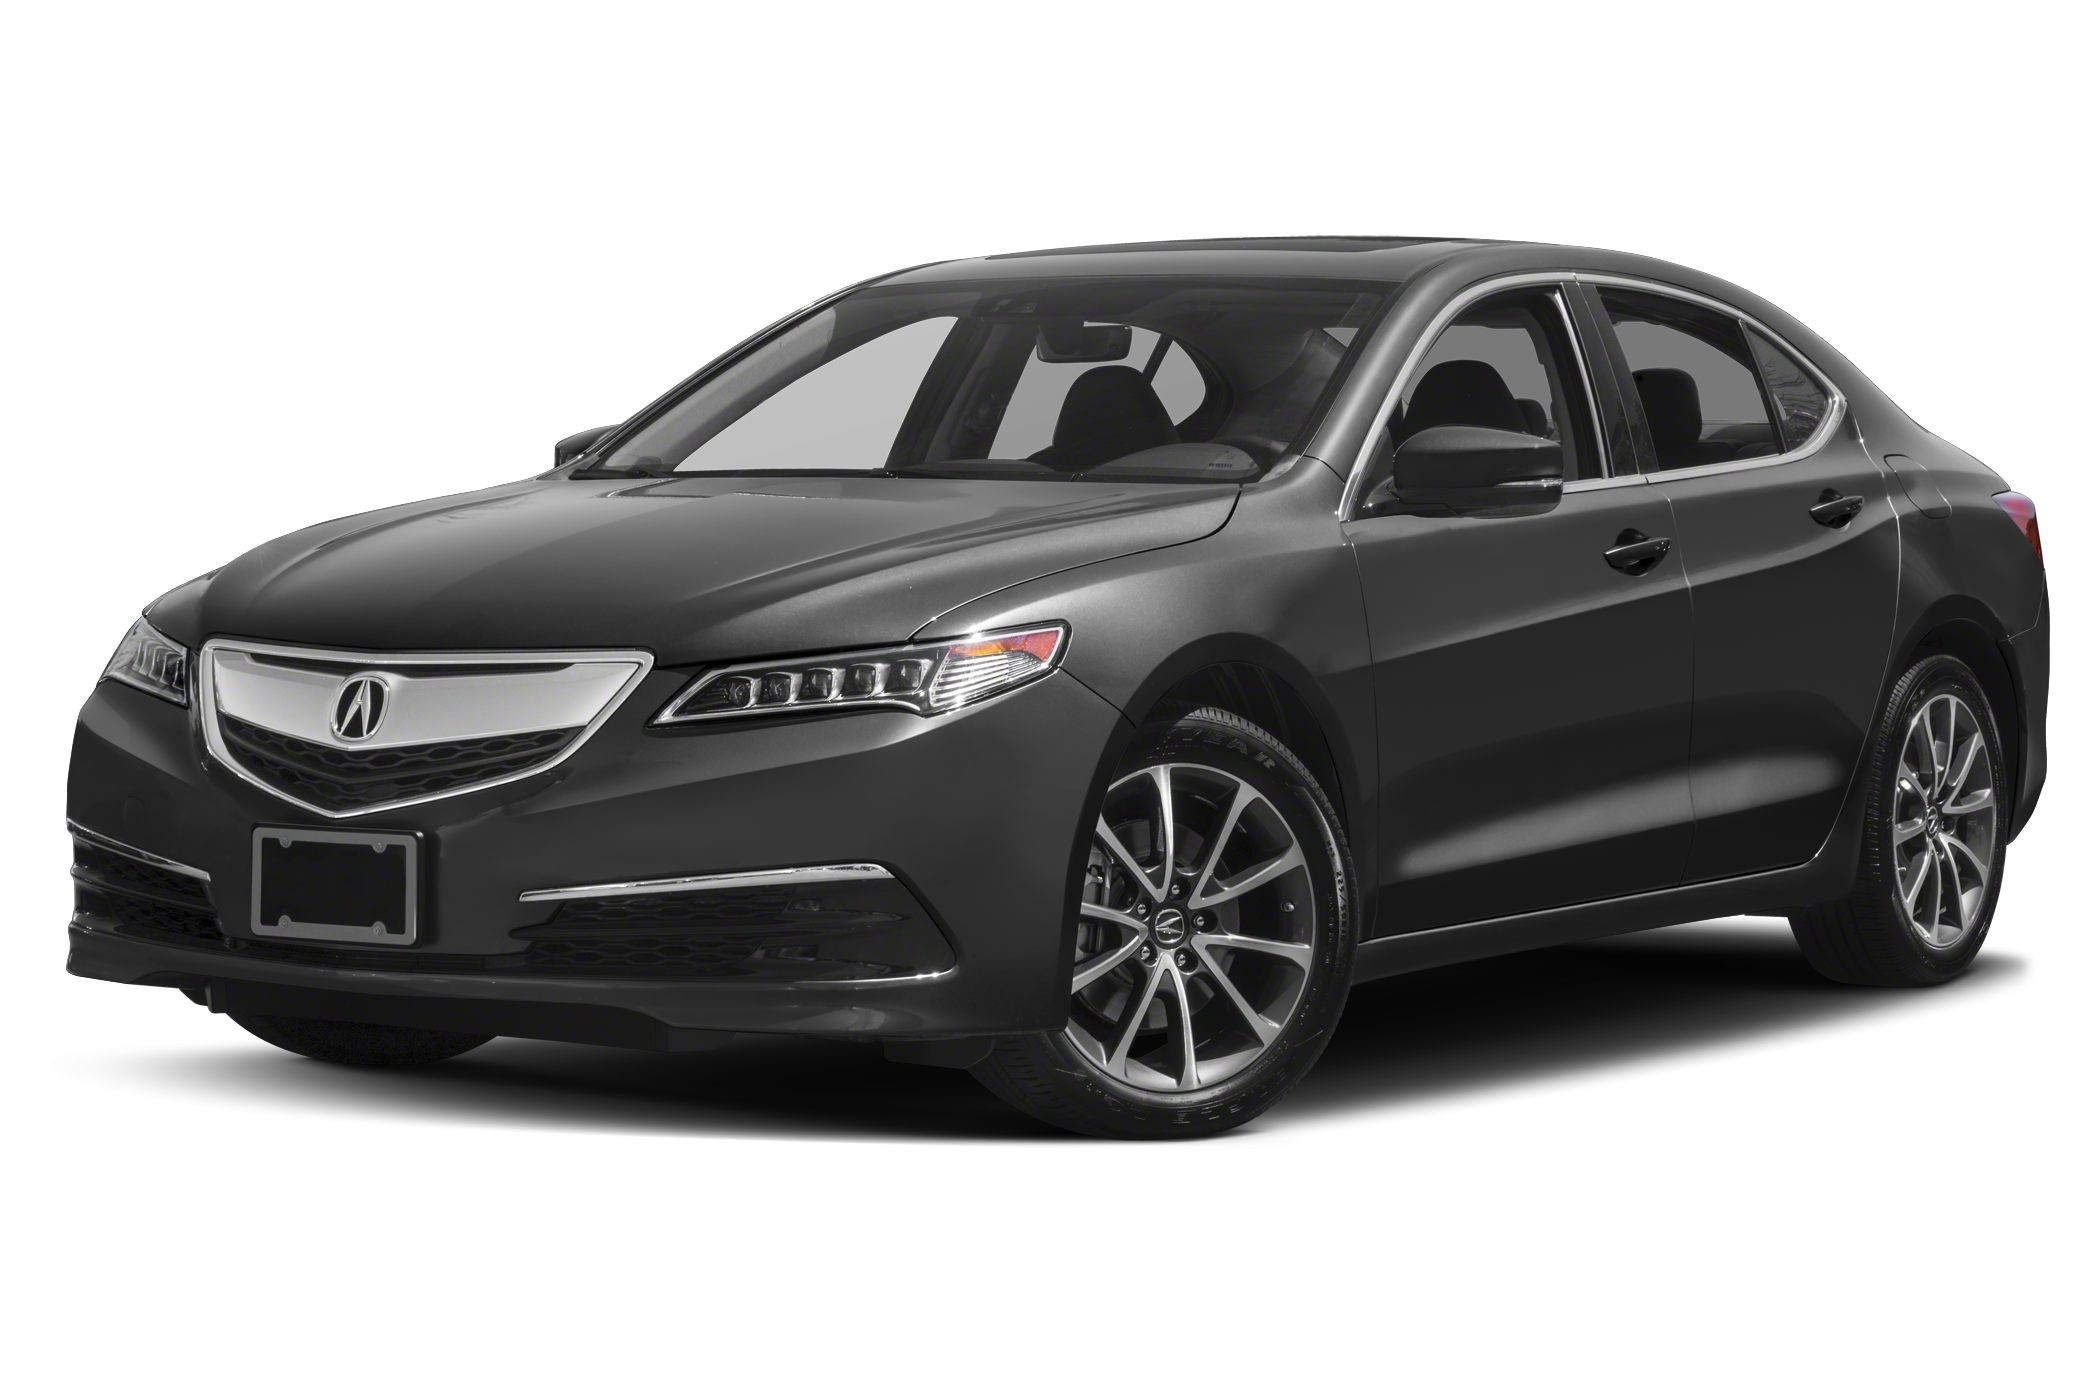 acura dealership columbia sc lovely used cars for sale at mcdaniels